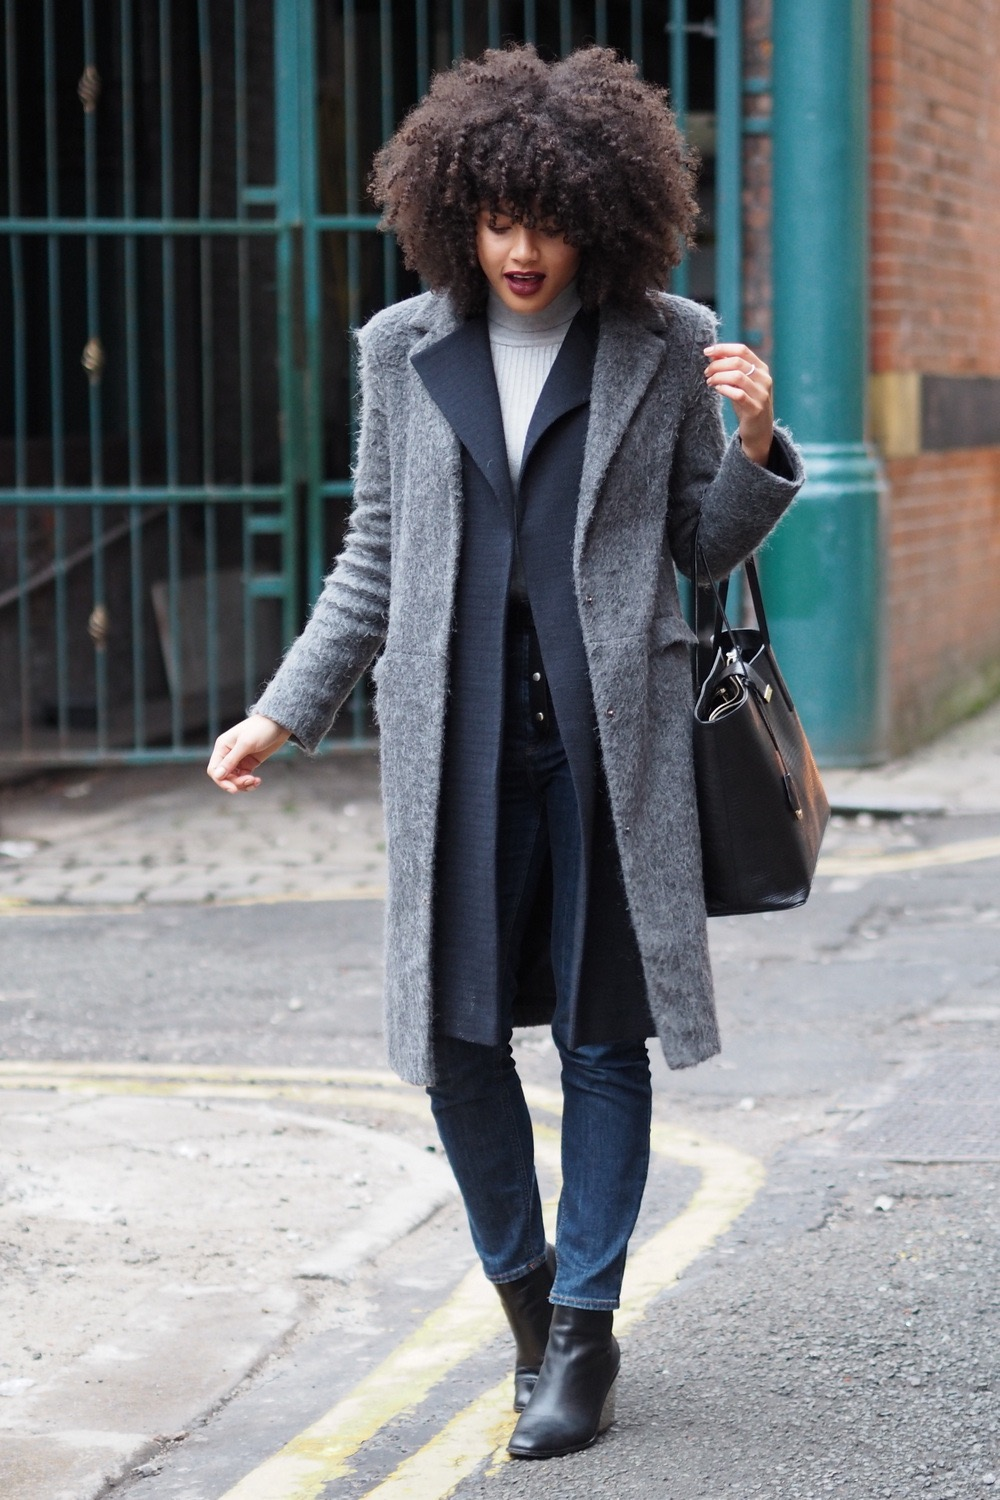 autumn winter layering outfit